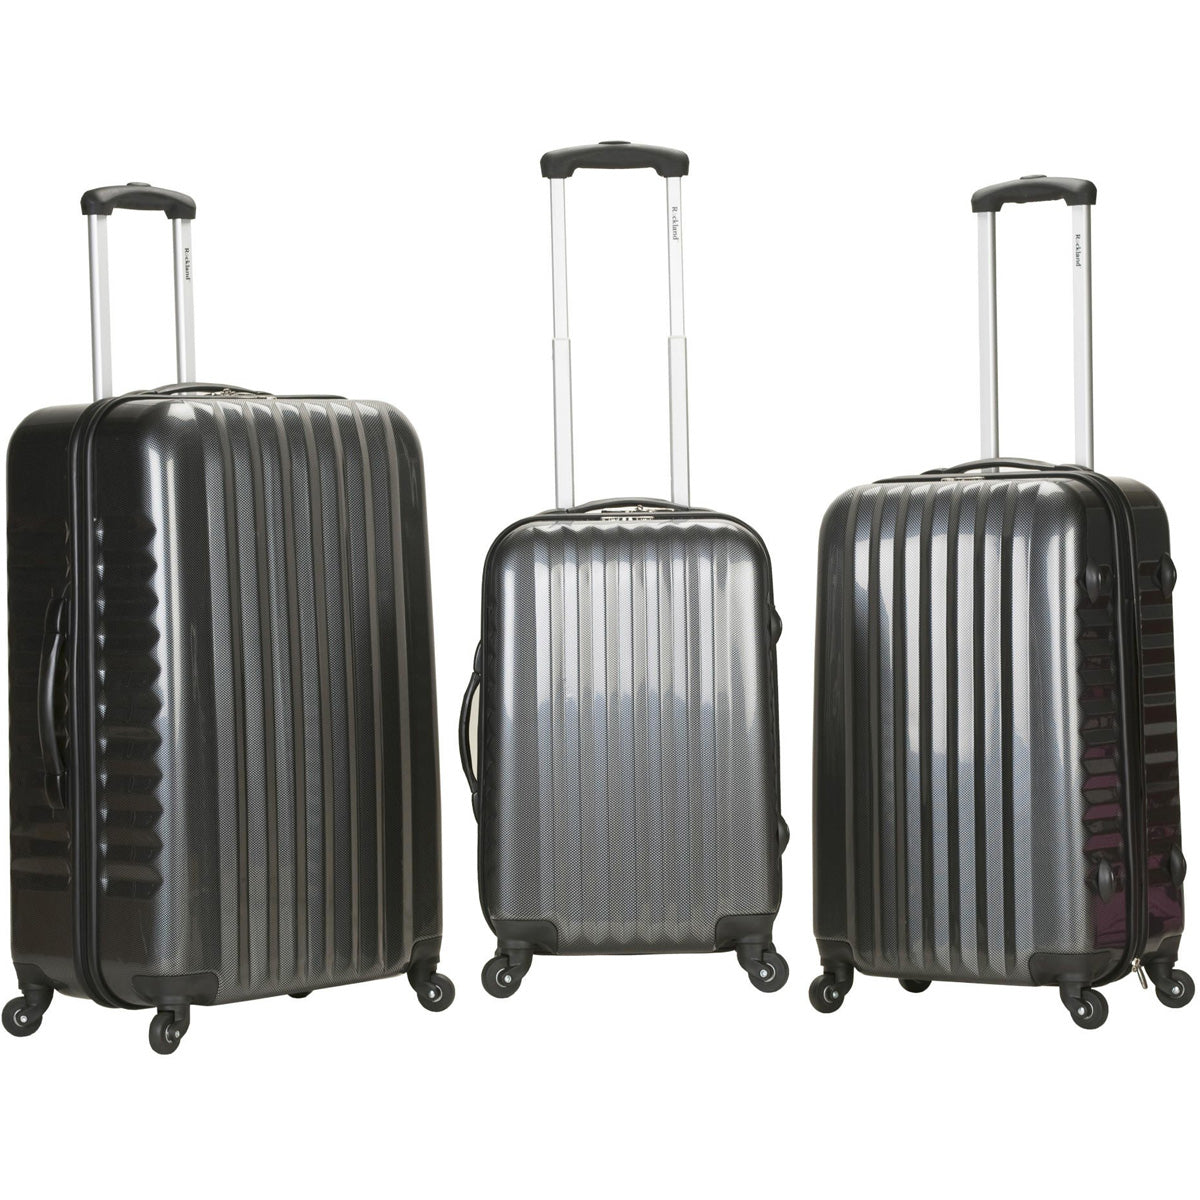 Rockland Luggage London ABS 3 Piece Hardside Spinner Luggage Set